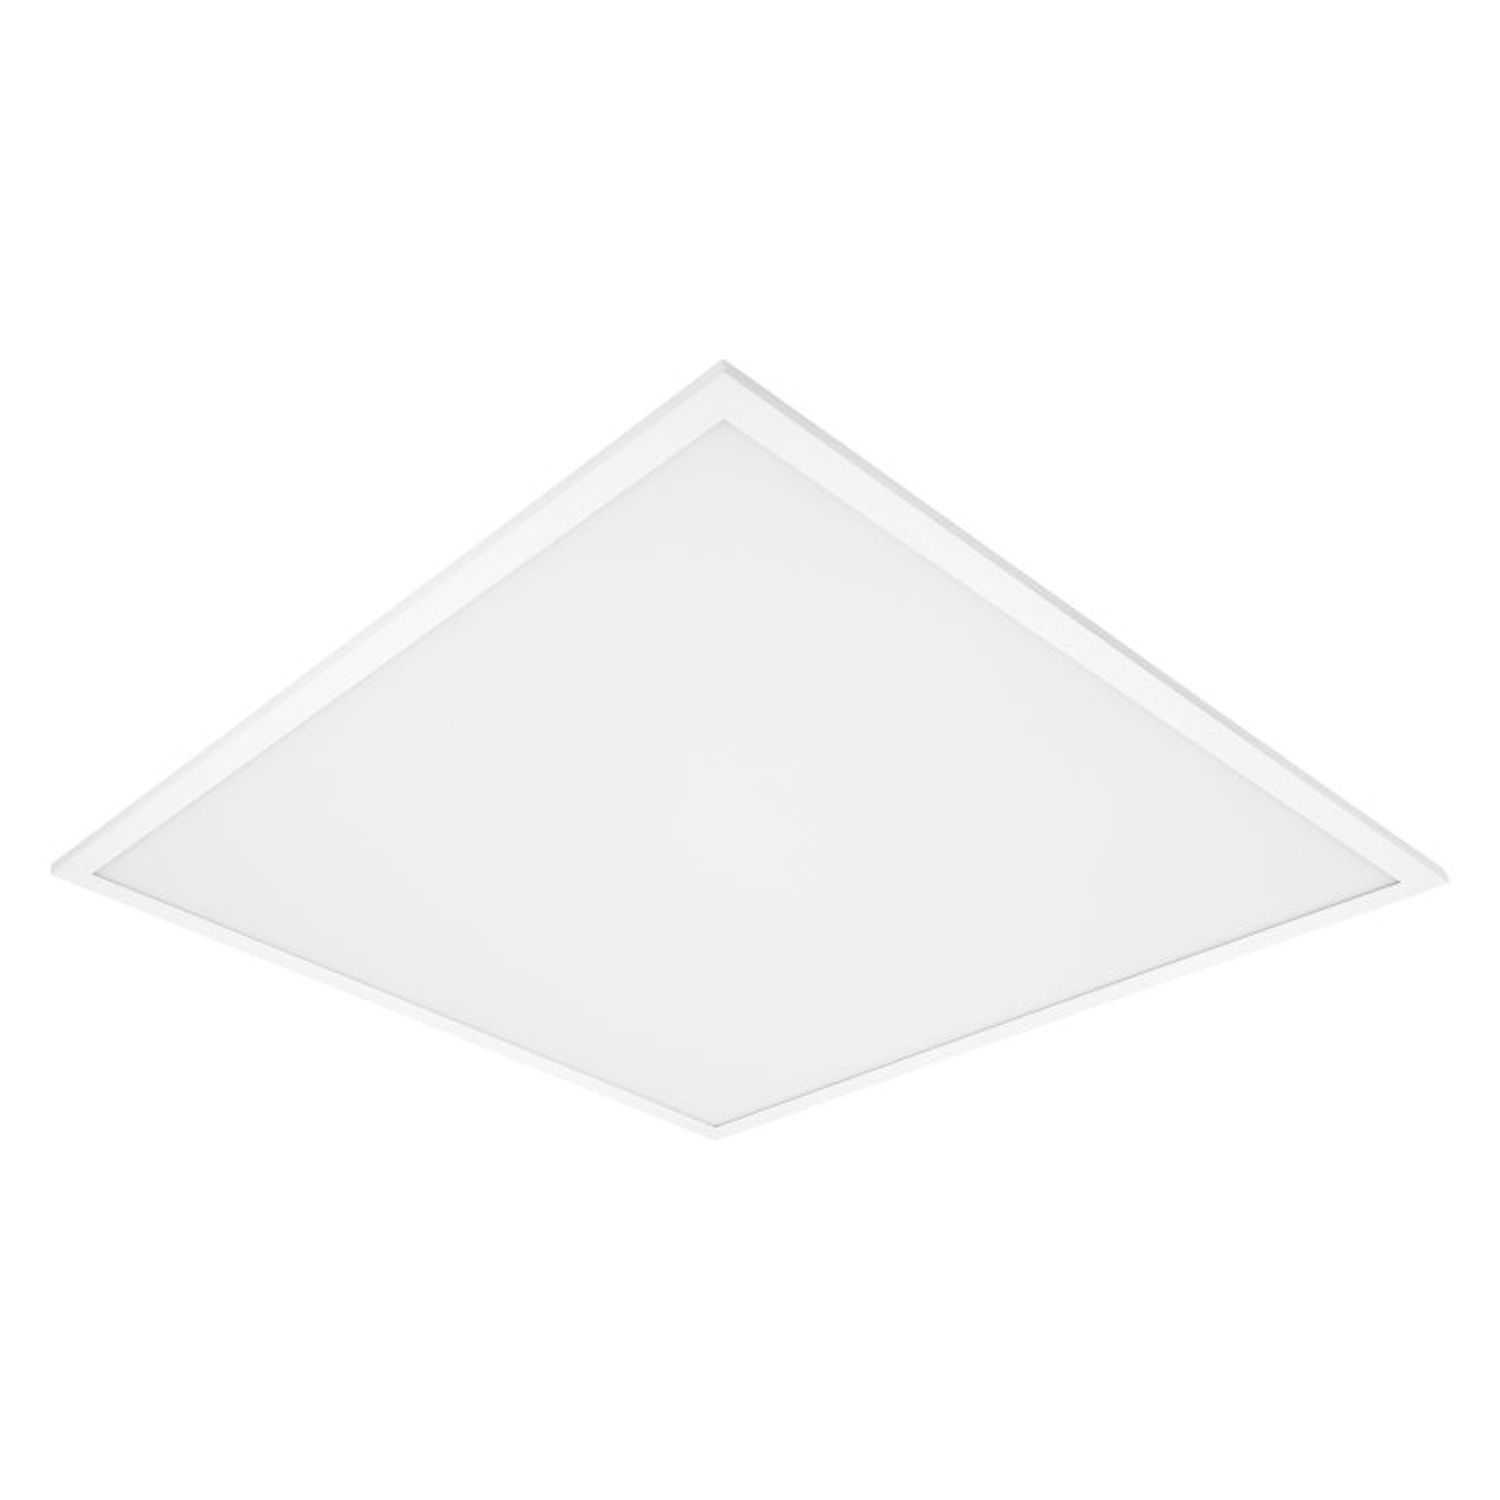 Ledvance Panneau LED Performance 62.5x62.5cm 3000K 25W | Blanc Chaud